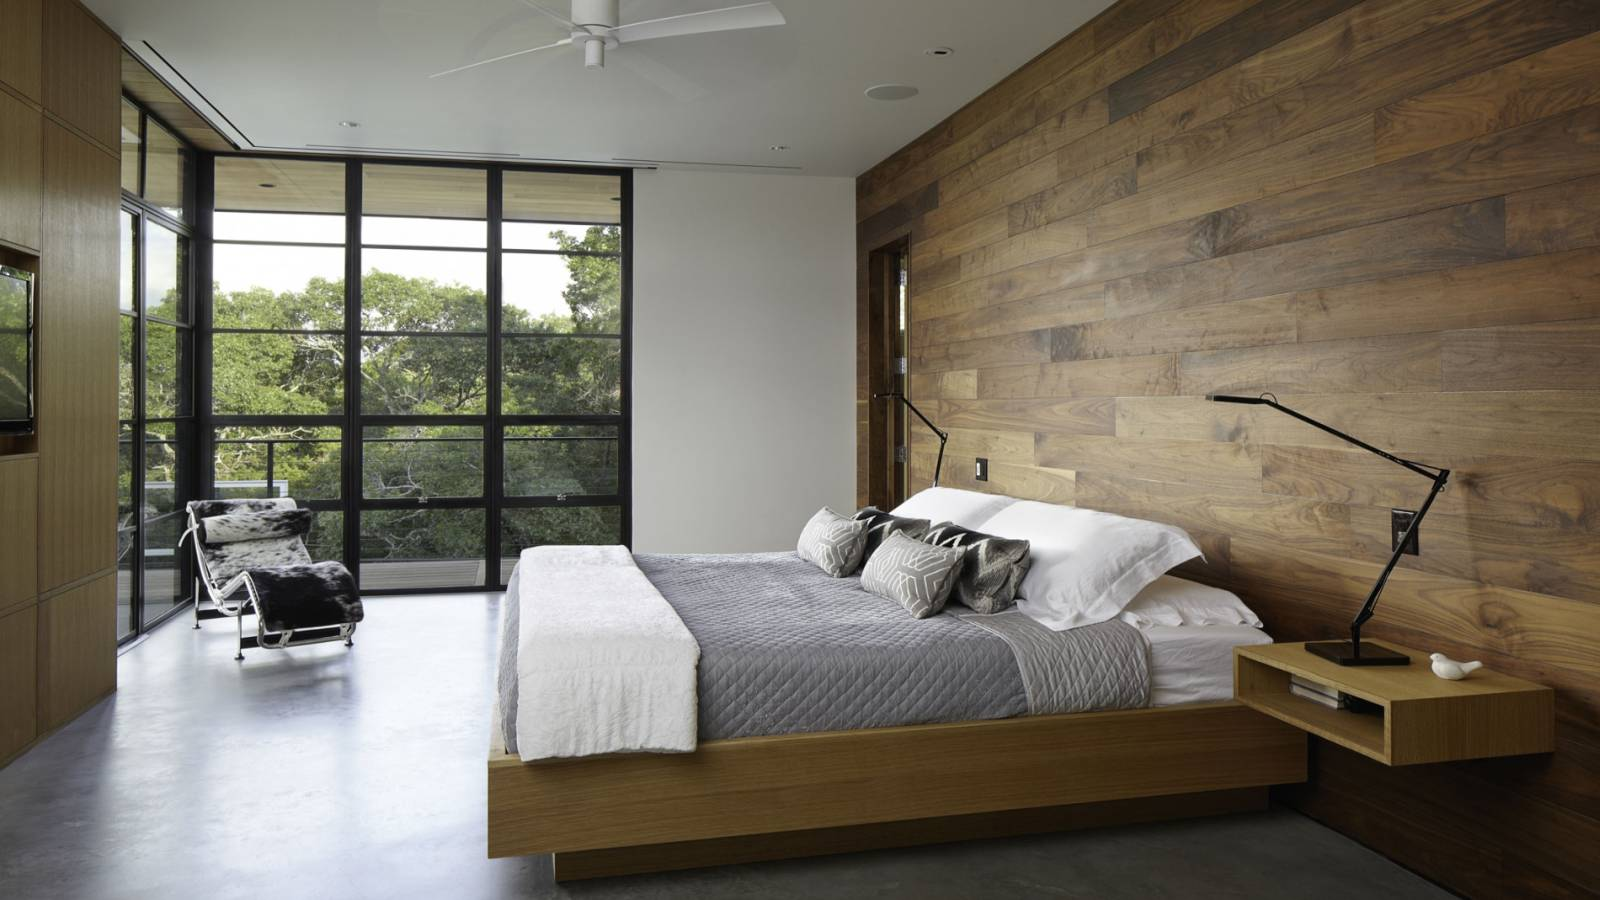 15 Inspiration Bedroom Interior Design With Minimalist ... on Minimalist Bedroom Design  id=41904